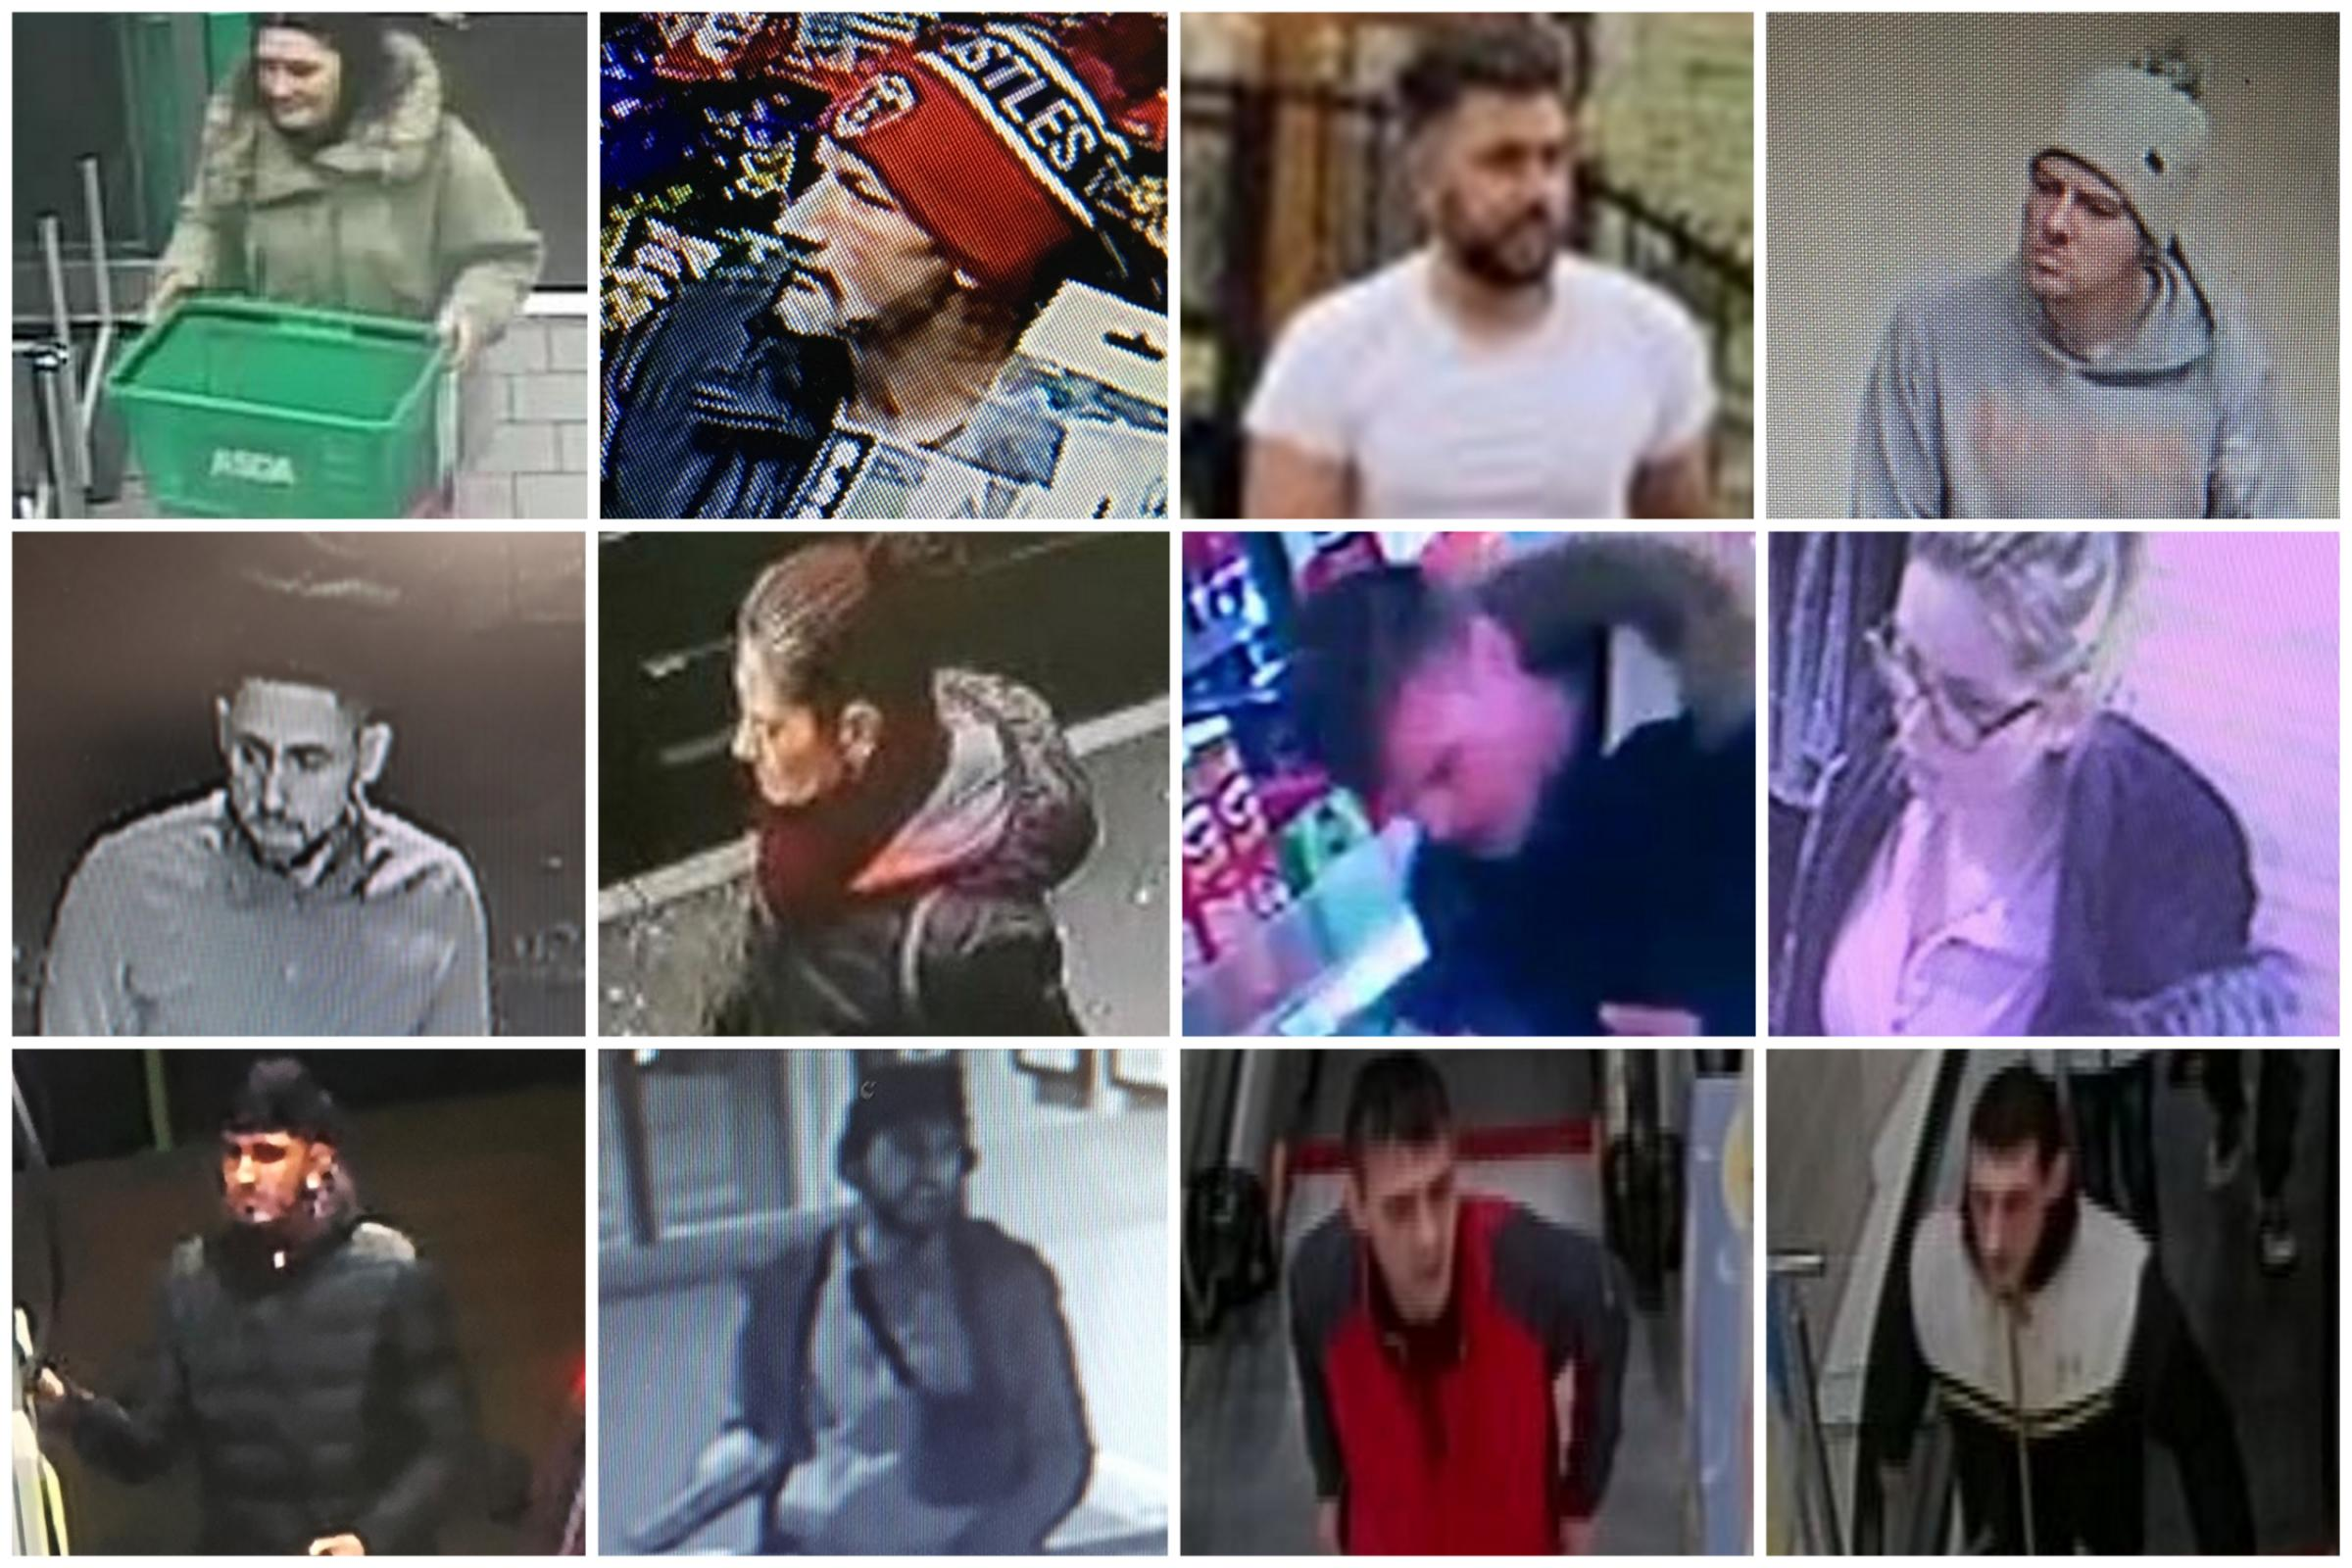 CAUGHT ON CAMERA: Police release images of people they would like to speak to